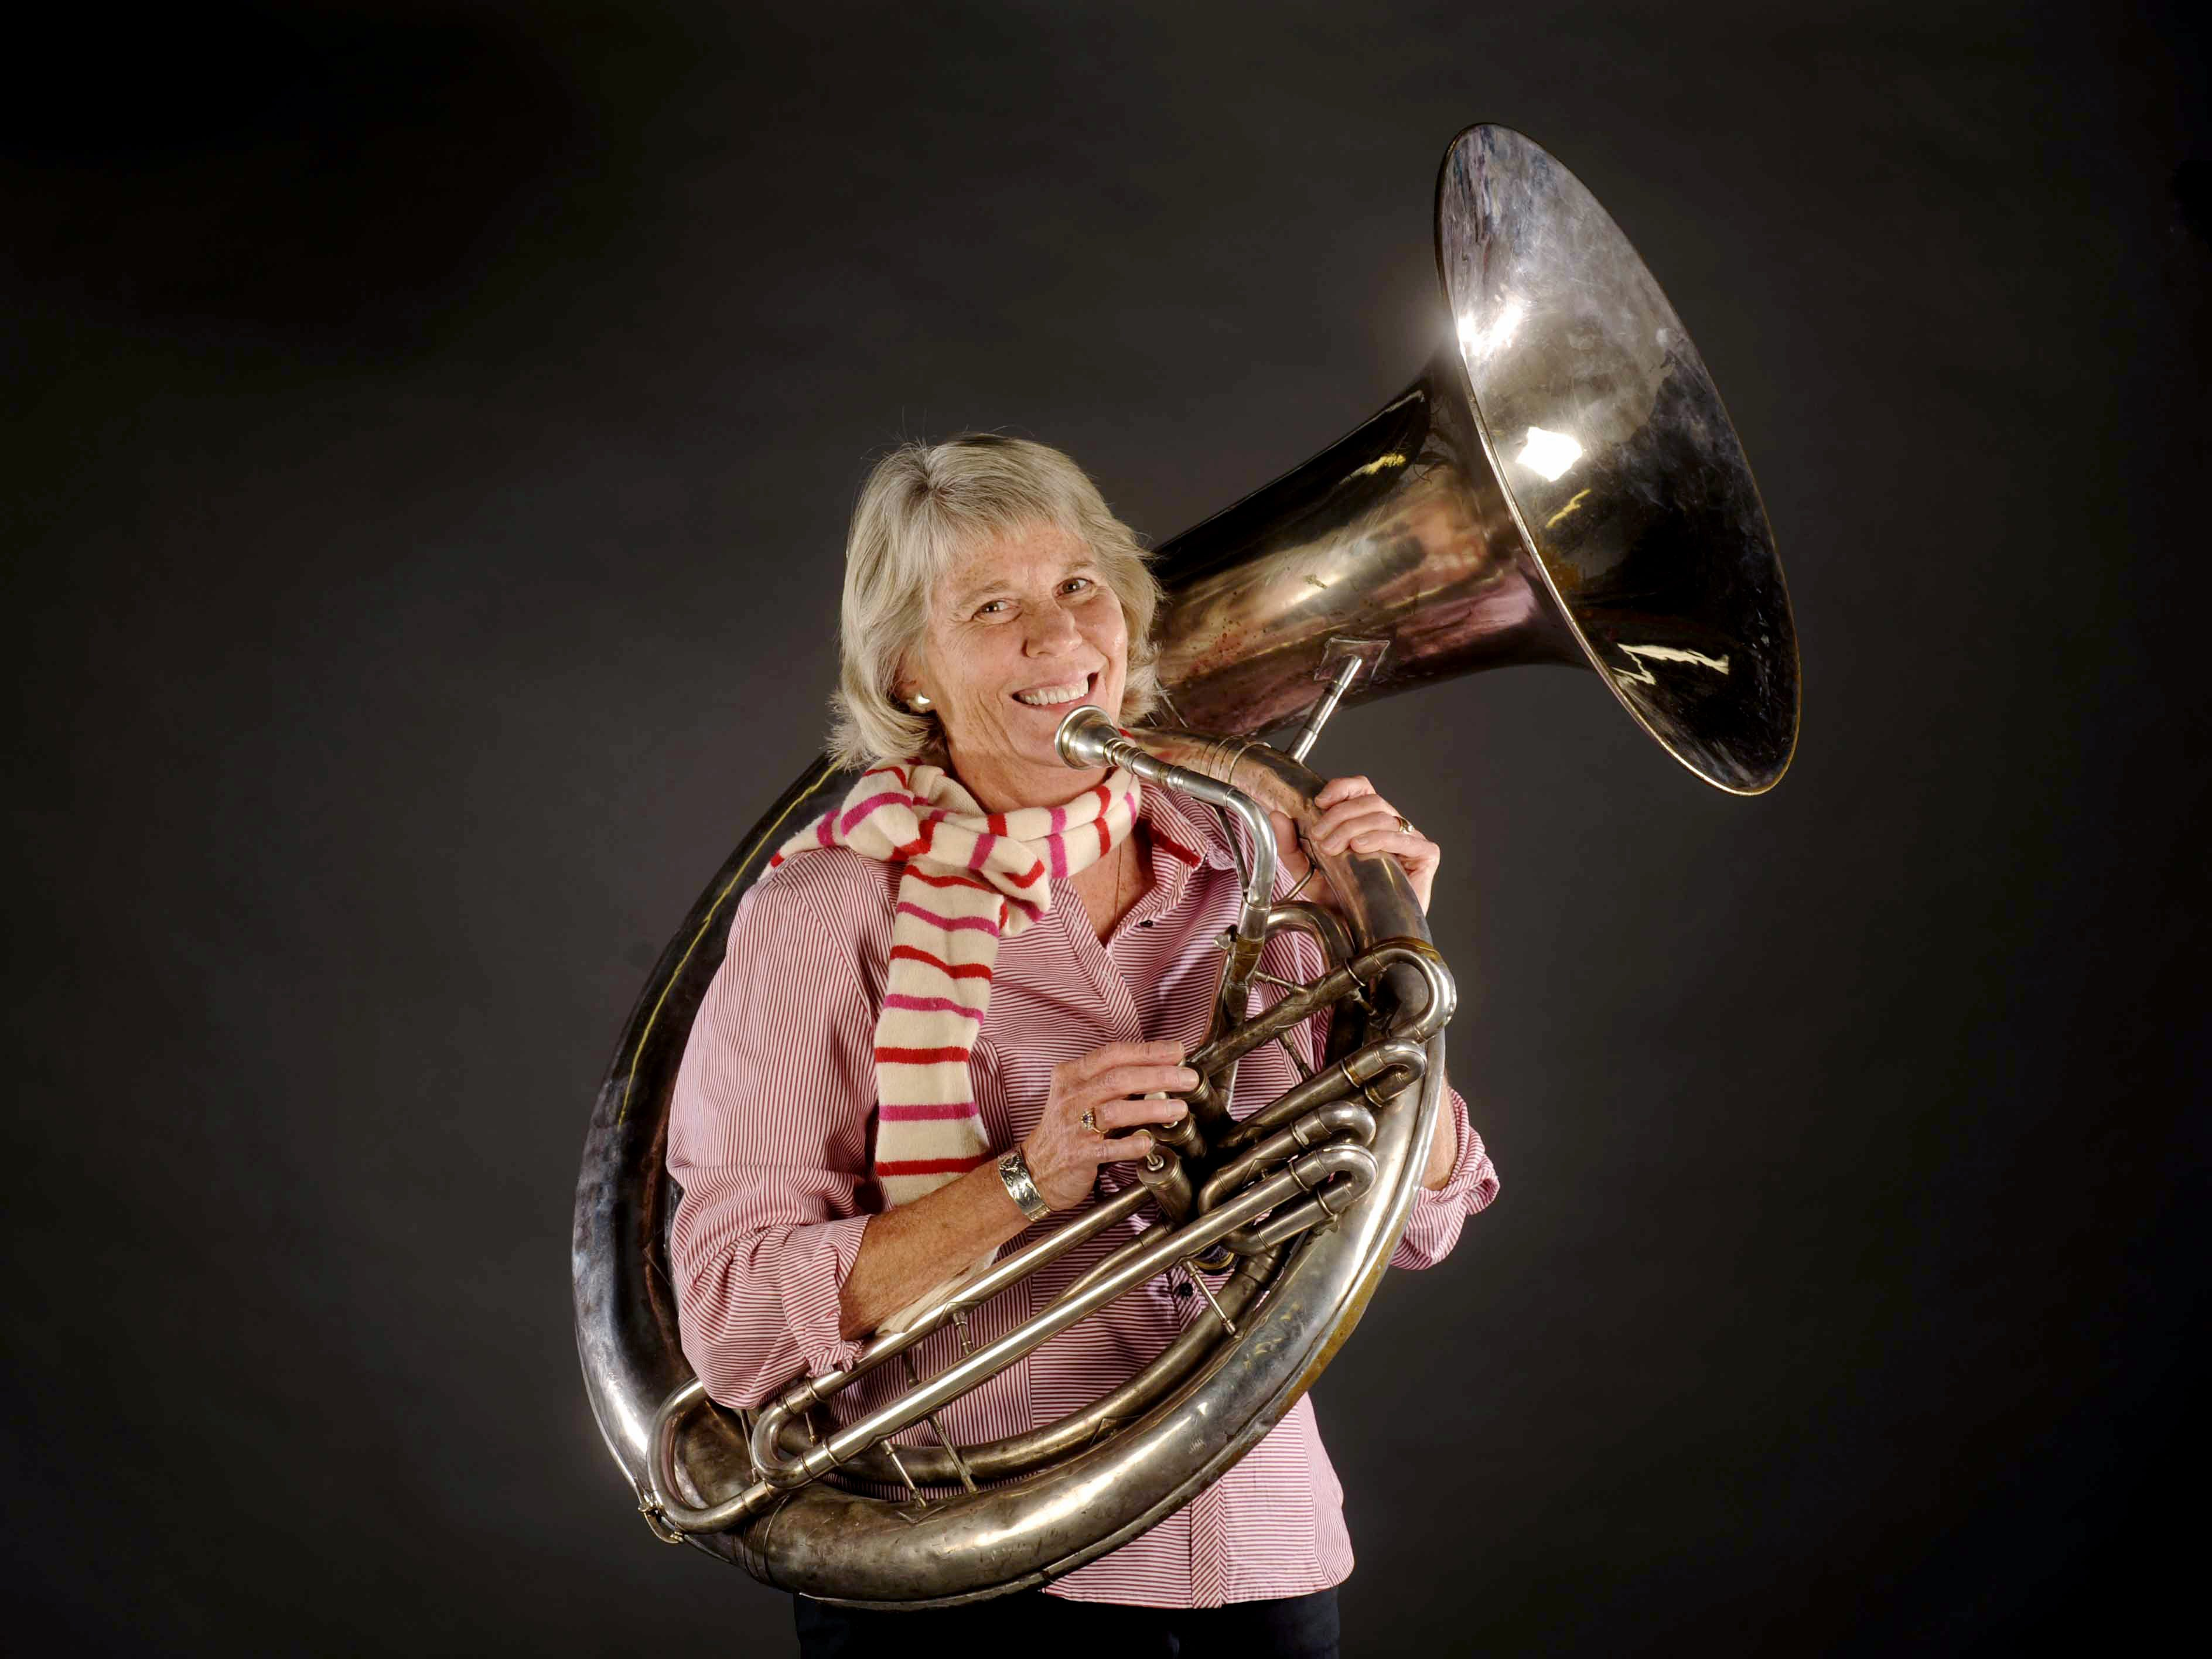 Ms. Cheap's Mary Hance gets ready Nov. 12, 2010, for A Tuba Christmas, a free Christmas concert with more than 100 tubas playing Christmas carols at First Baptist Church in downtown Nashville.